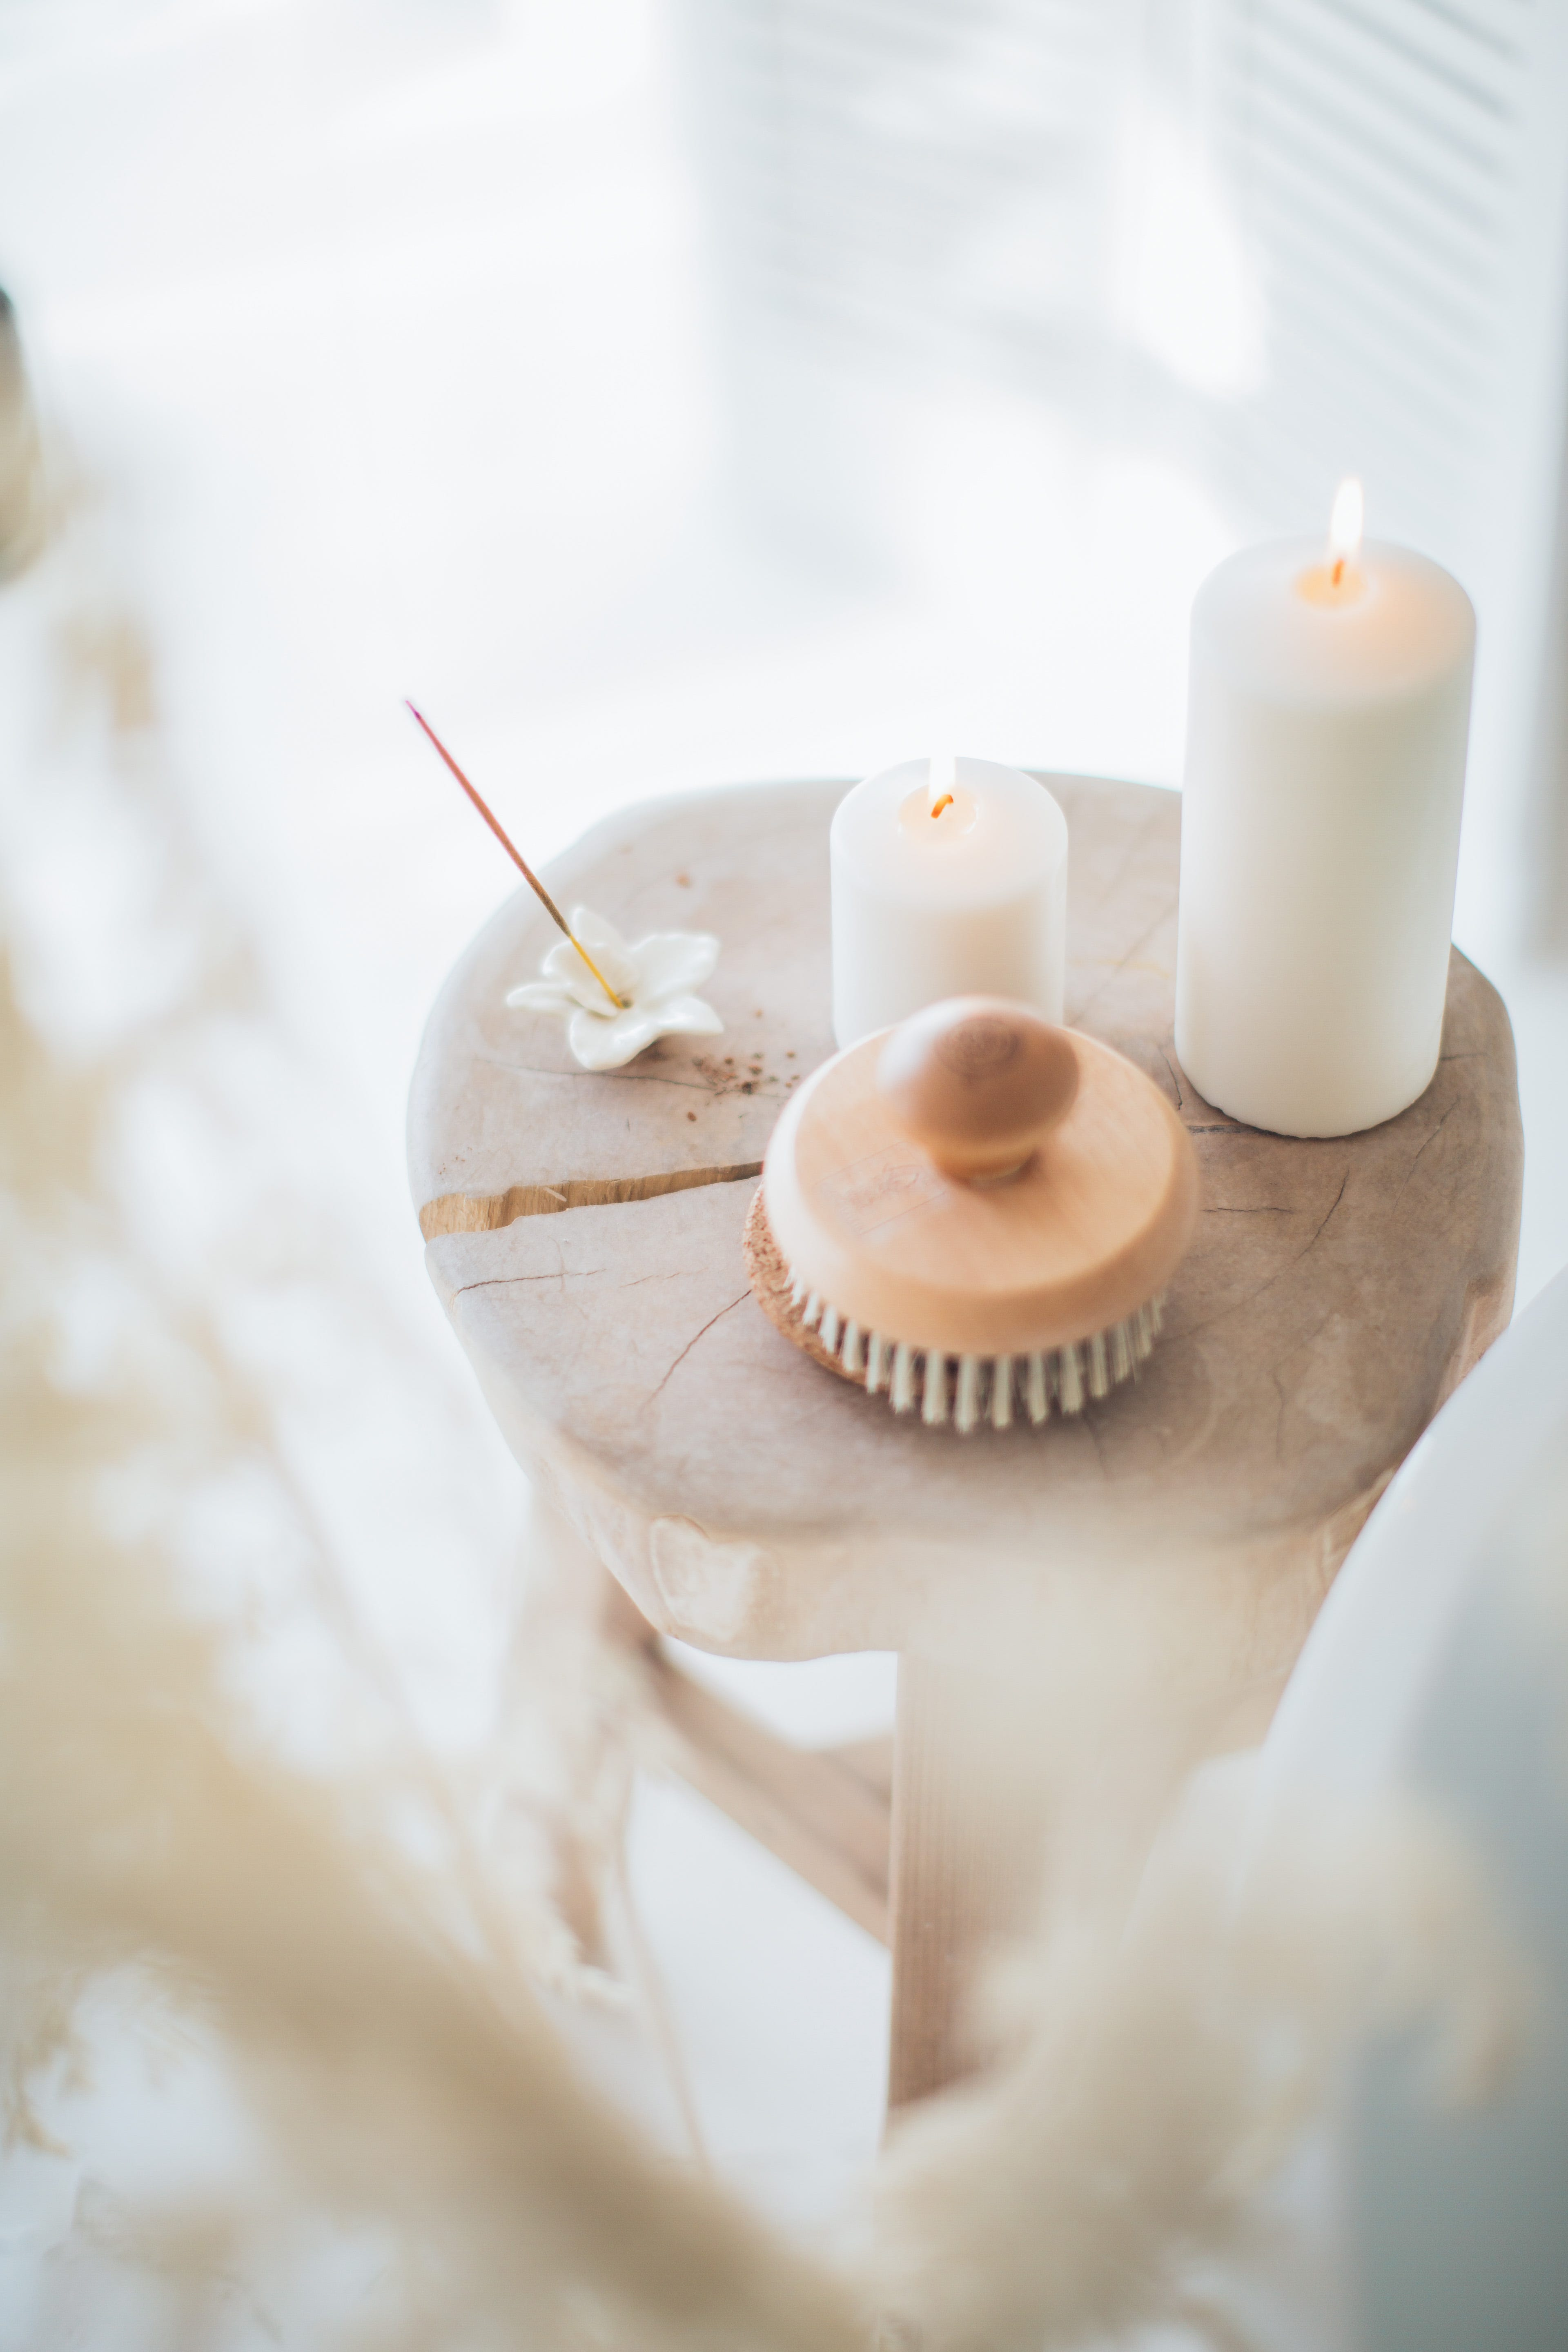 incense-and-white-candles-on-a-stool-3865712.jpg